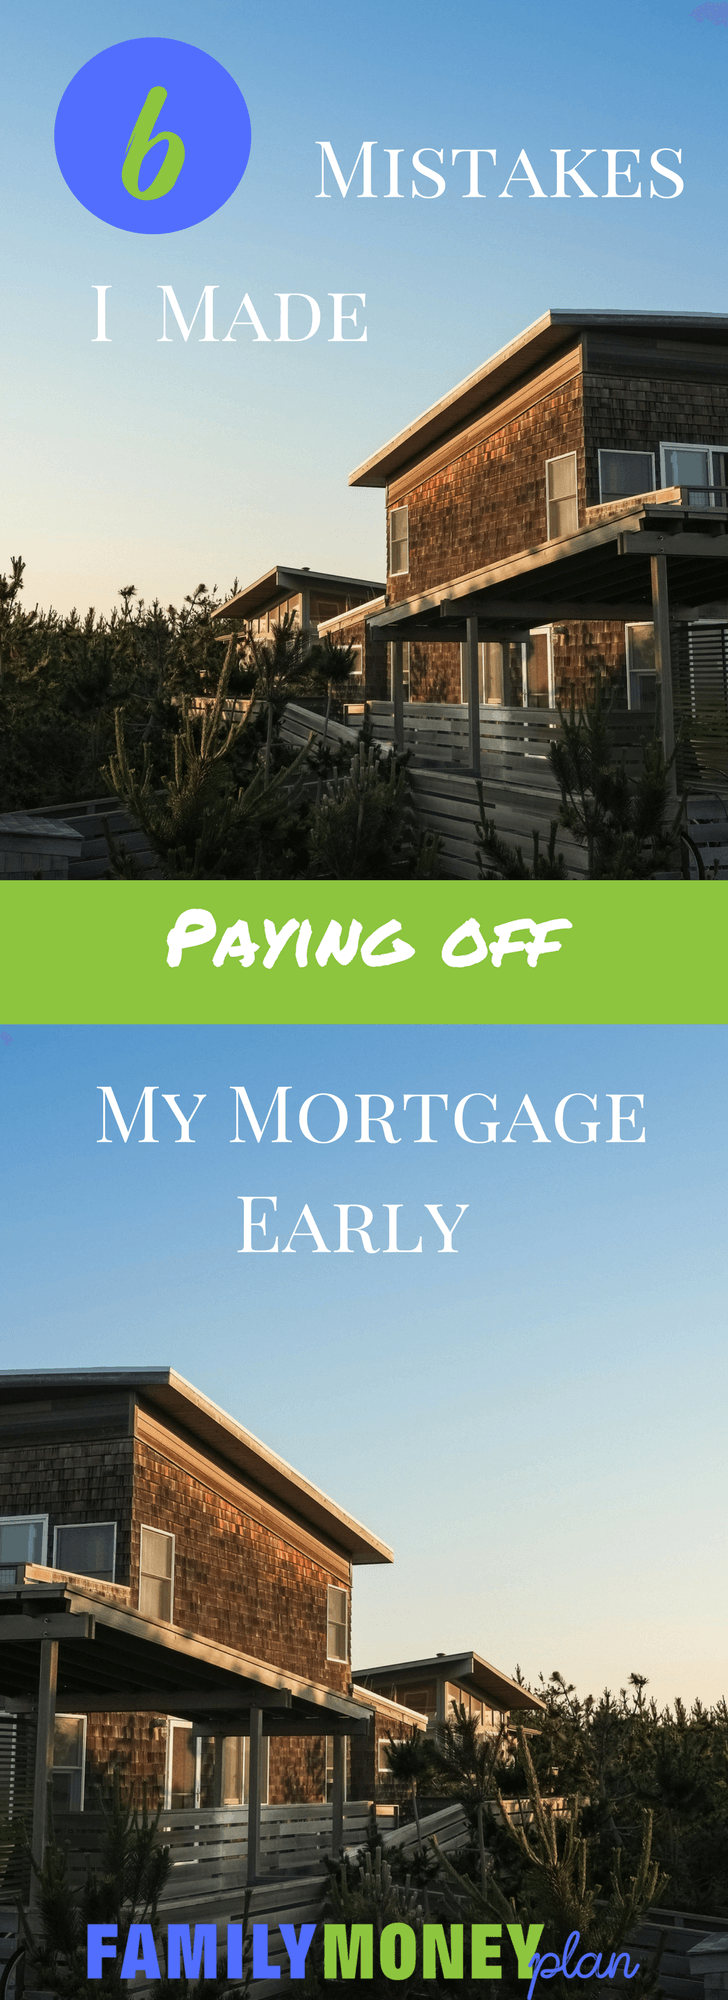 Wondering if paying off your mortgage is the right thing to do? See these mistakes we made paying off our house. |Mortgage and Debt Free |